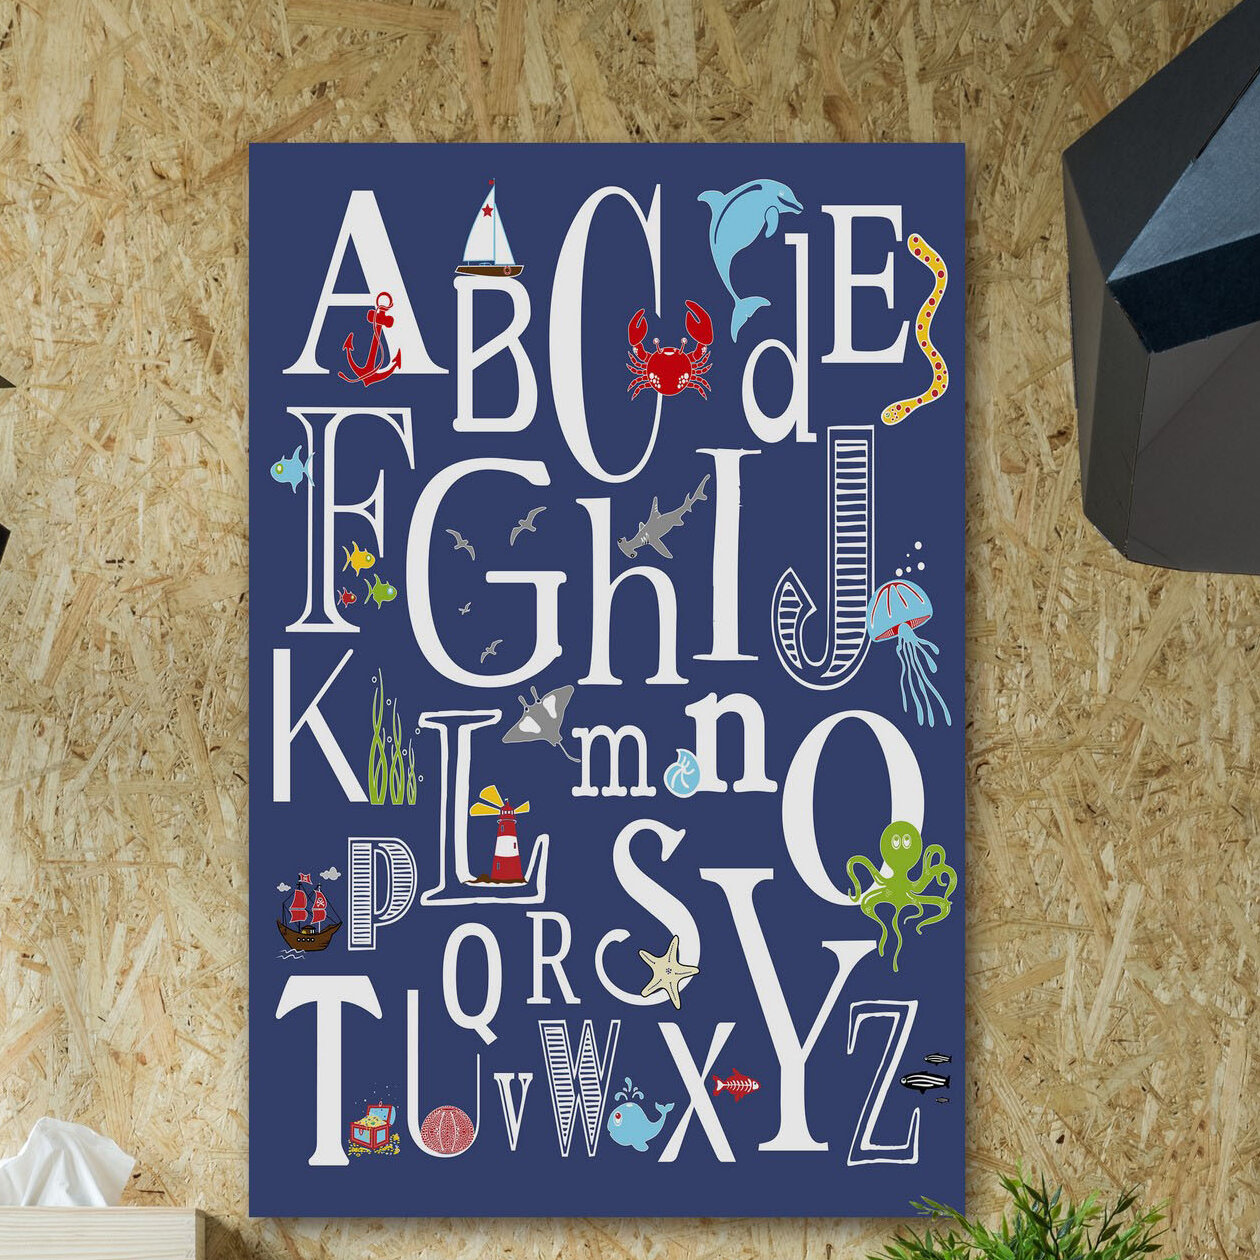 16 x 1.5 x 20 Proudly Made in USA Stupell Home D/écor All in a Dogs Day ABC Stretched Canvas Wall Art